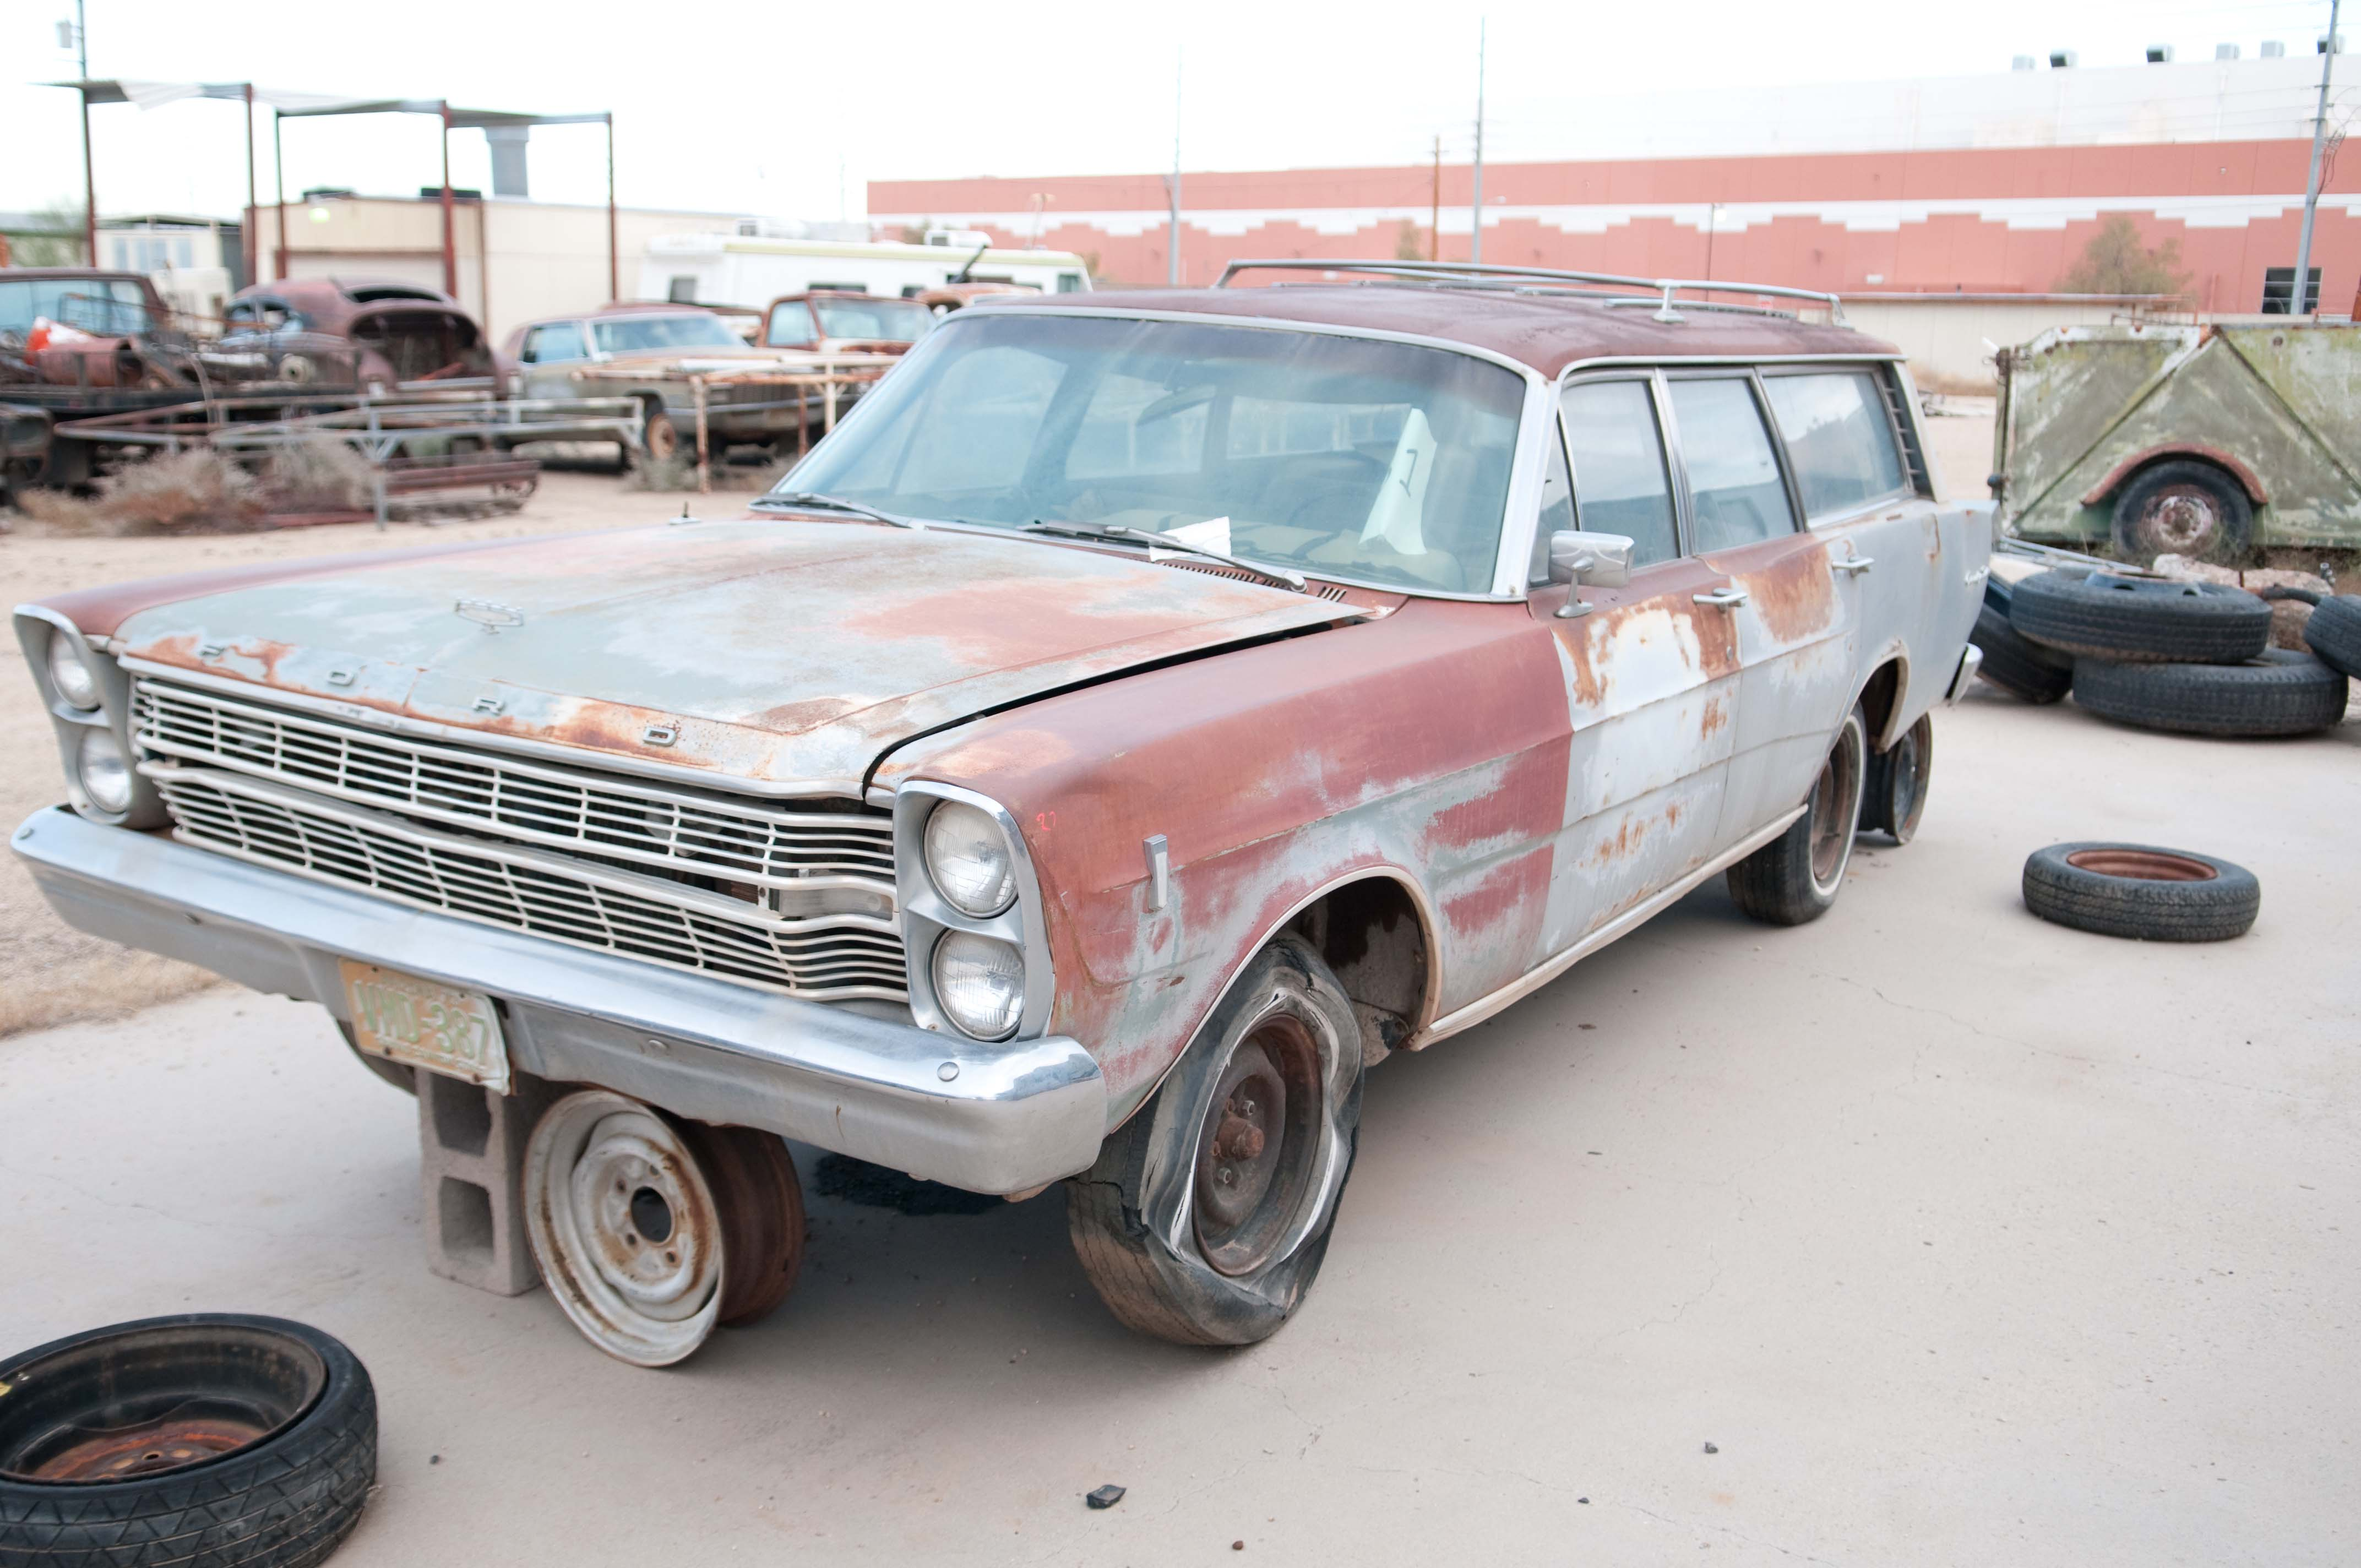 1966 ford country squire - photo #9